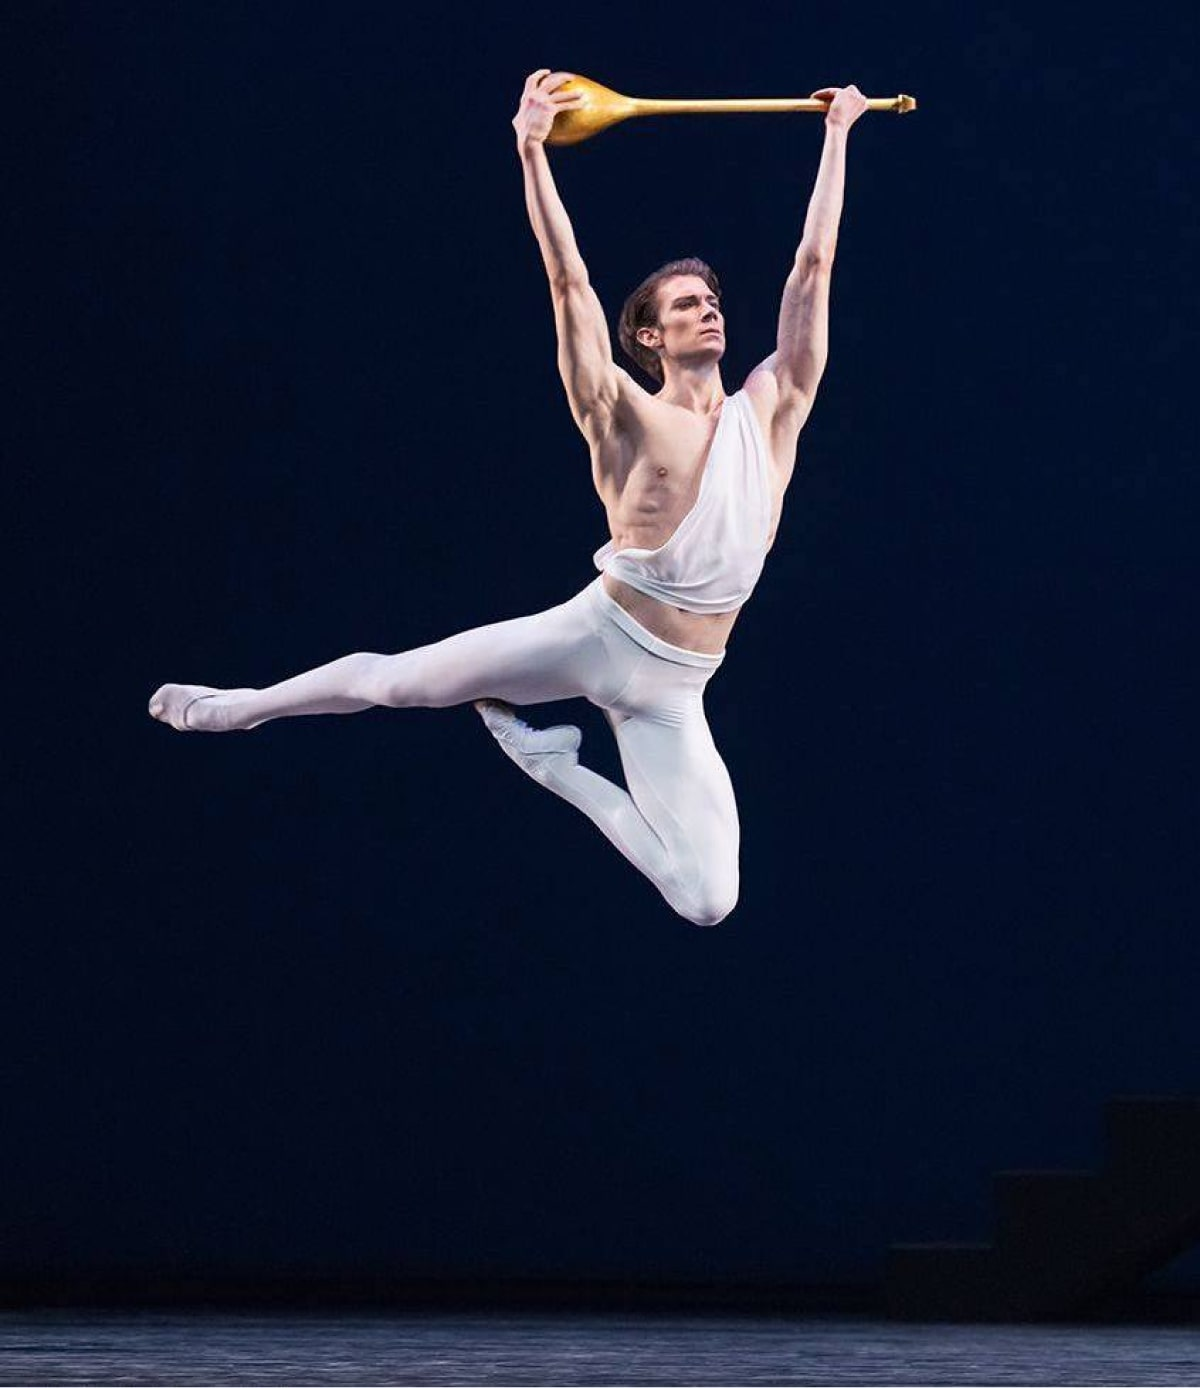 Bare-armed dancer in white tights leaps with golden lute held aloft against dark blue background.